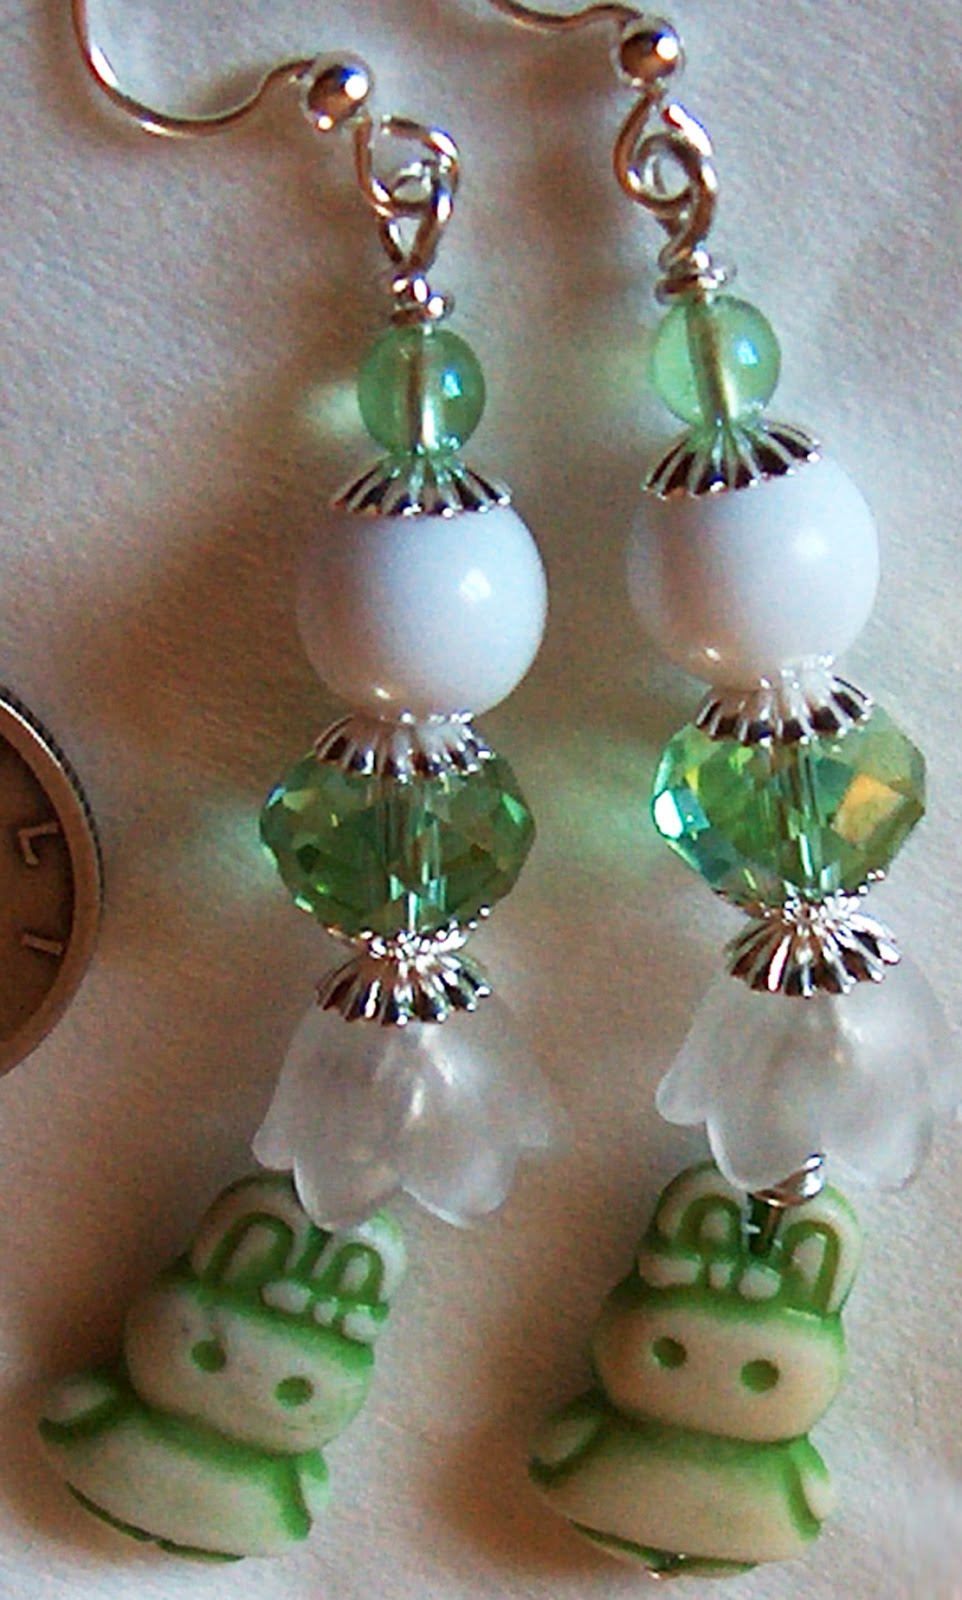 Green Rabbit Earrings